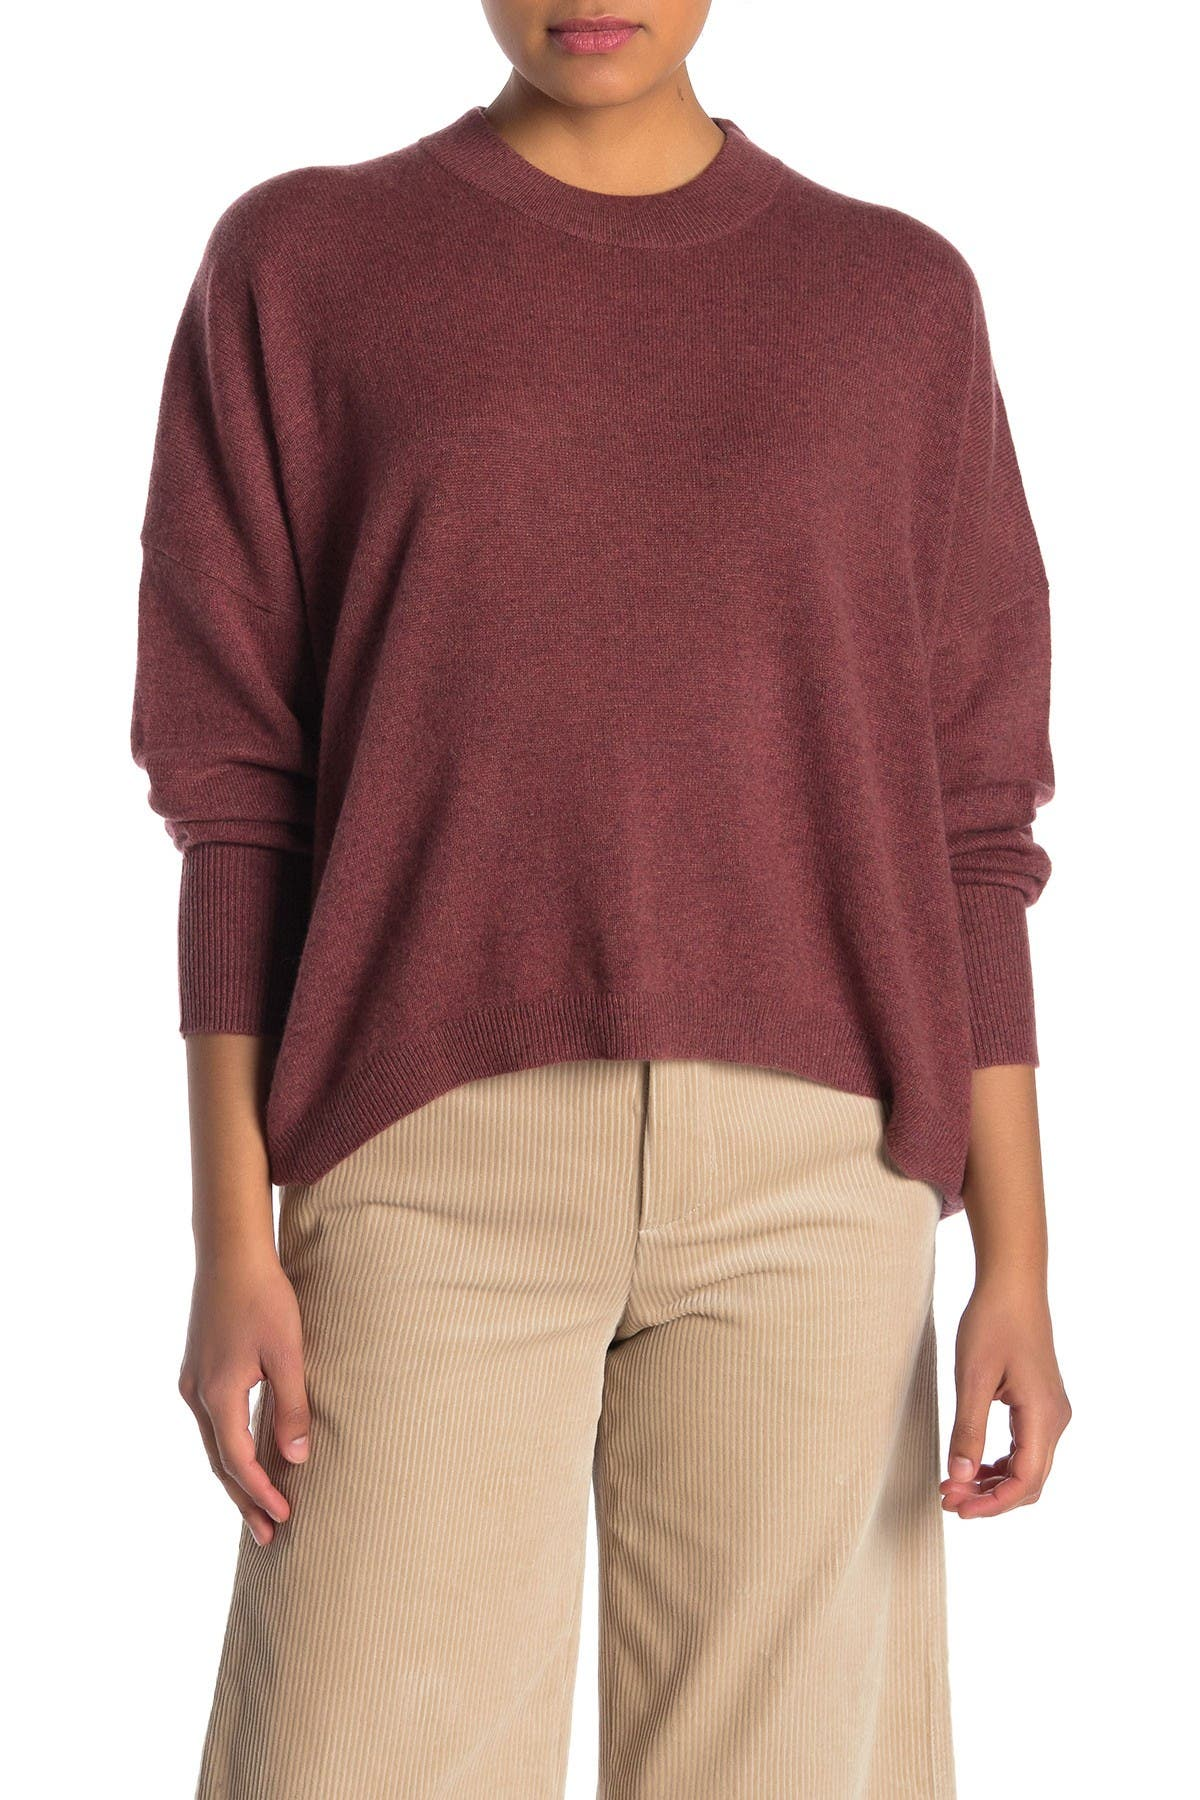 Image of 360 Cashmere Makayla High/Low Cashmere Sweater